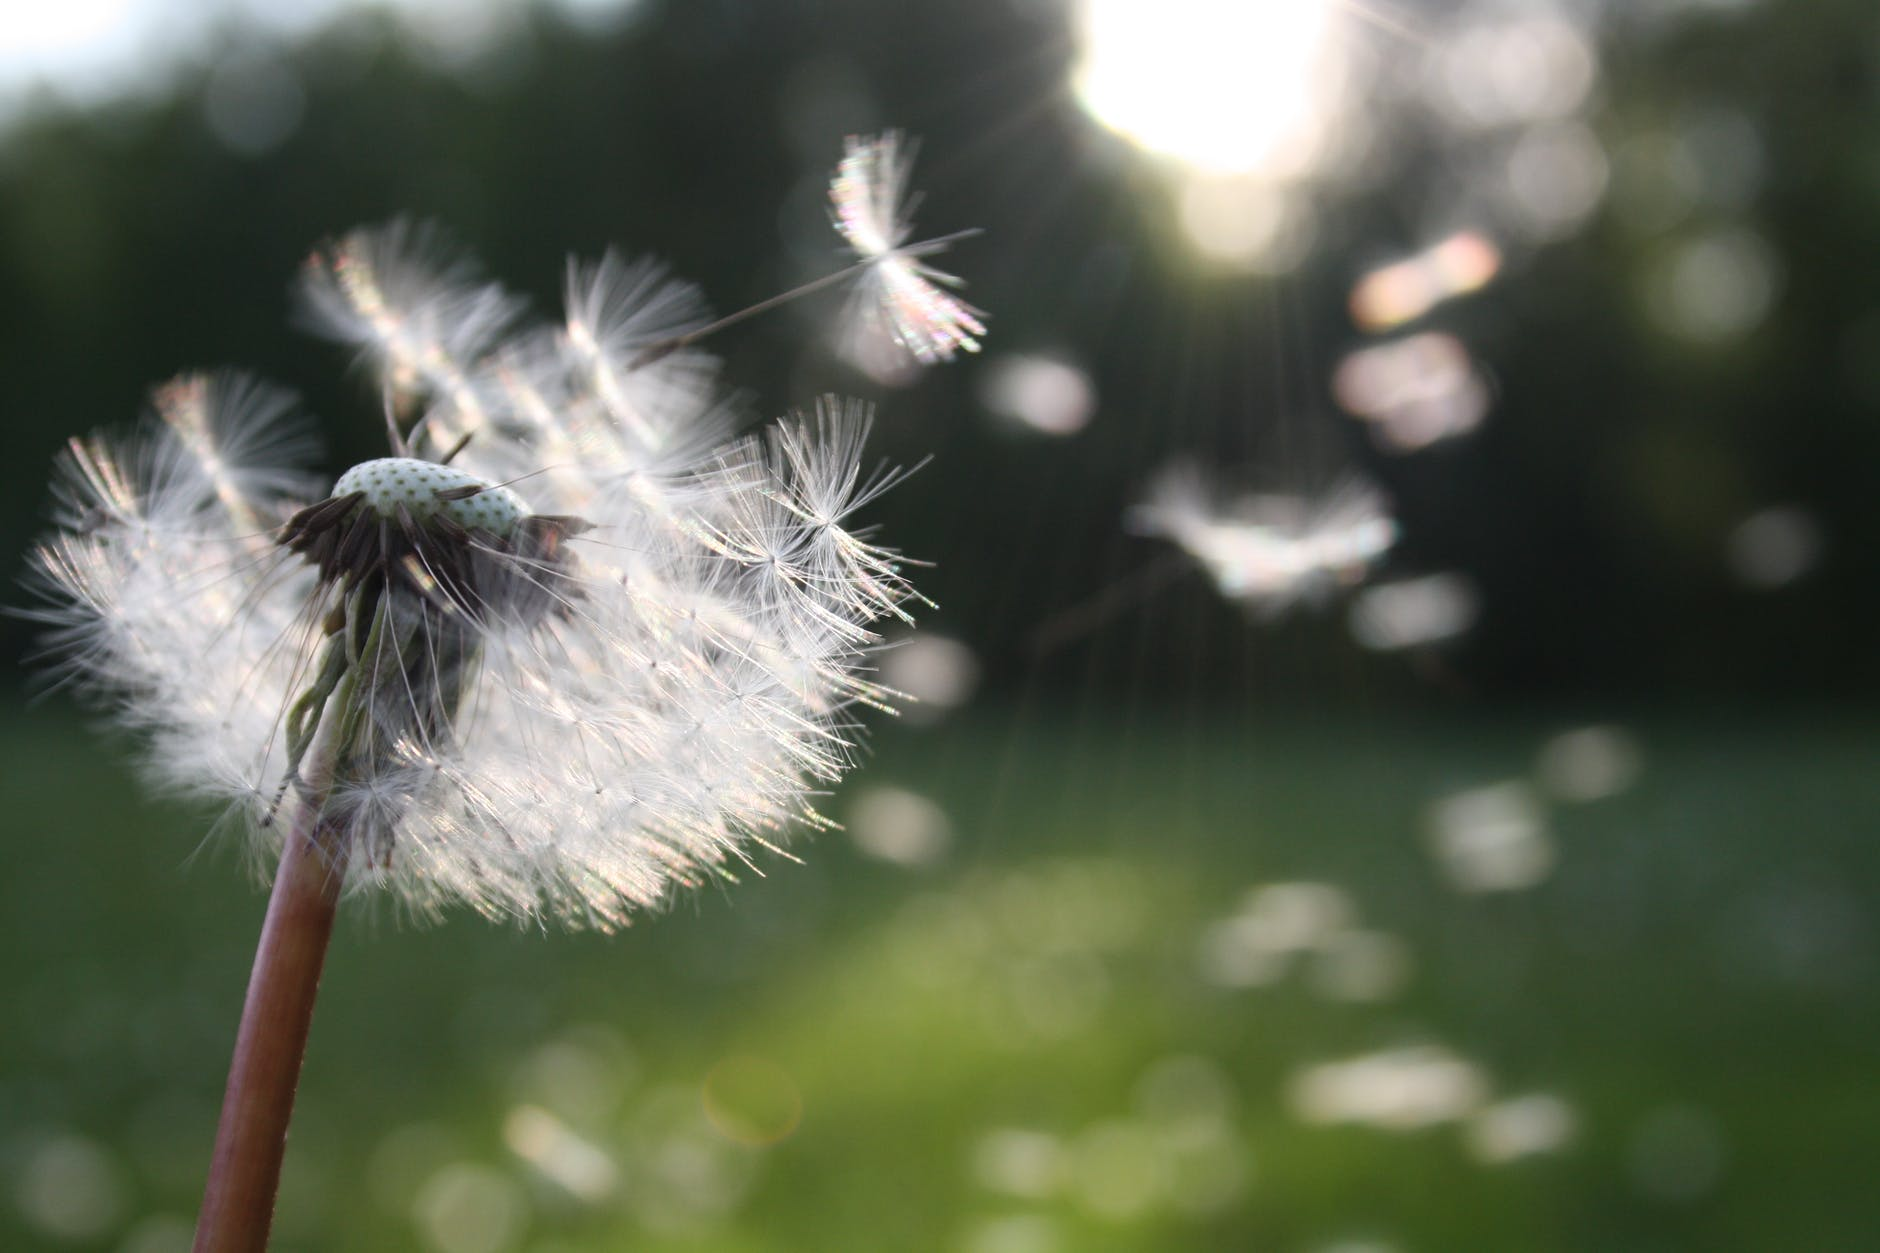 A colorful close-up photo of a dandelion blowing in the wind.